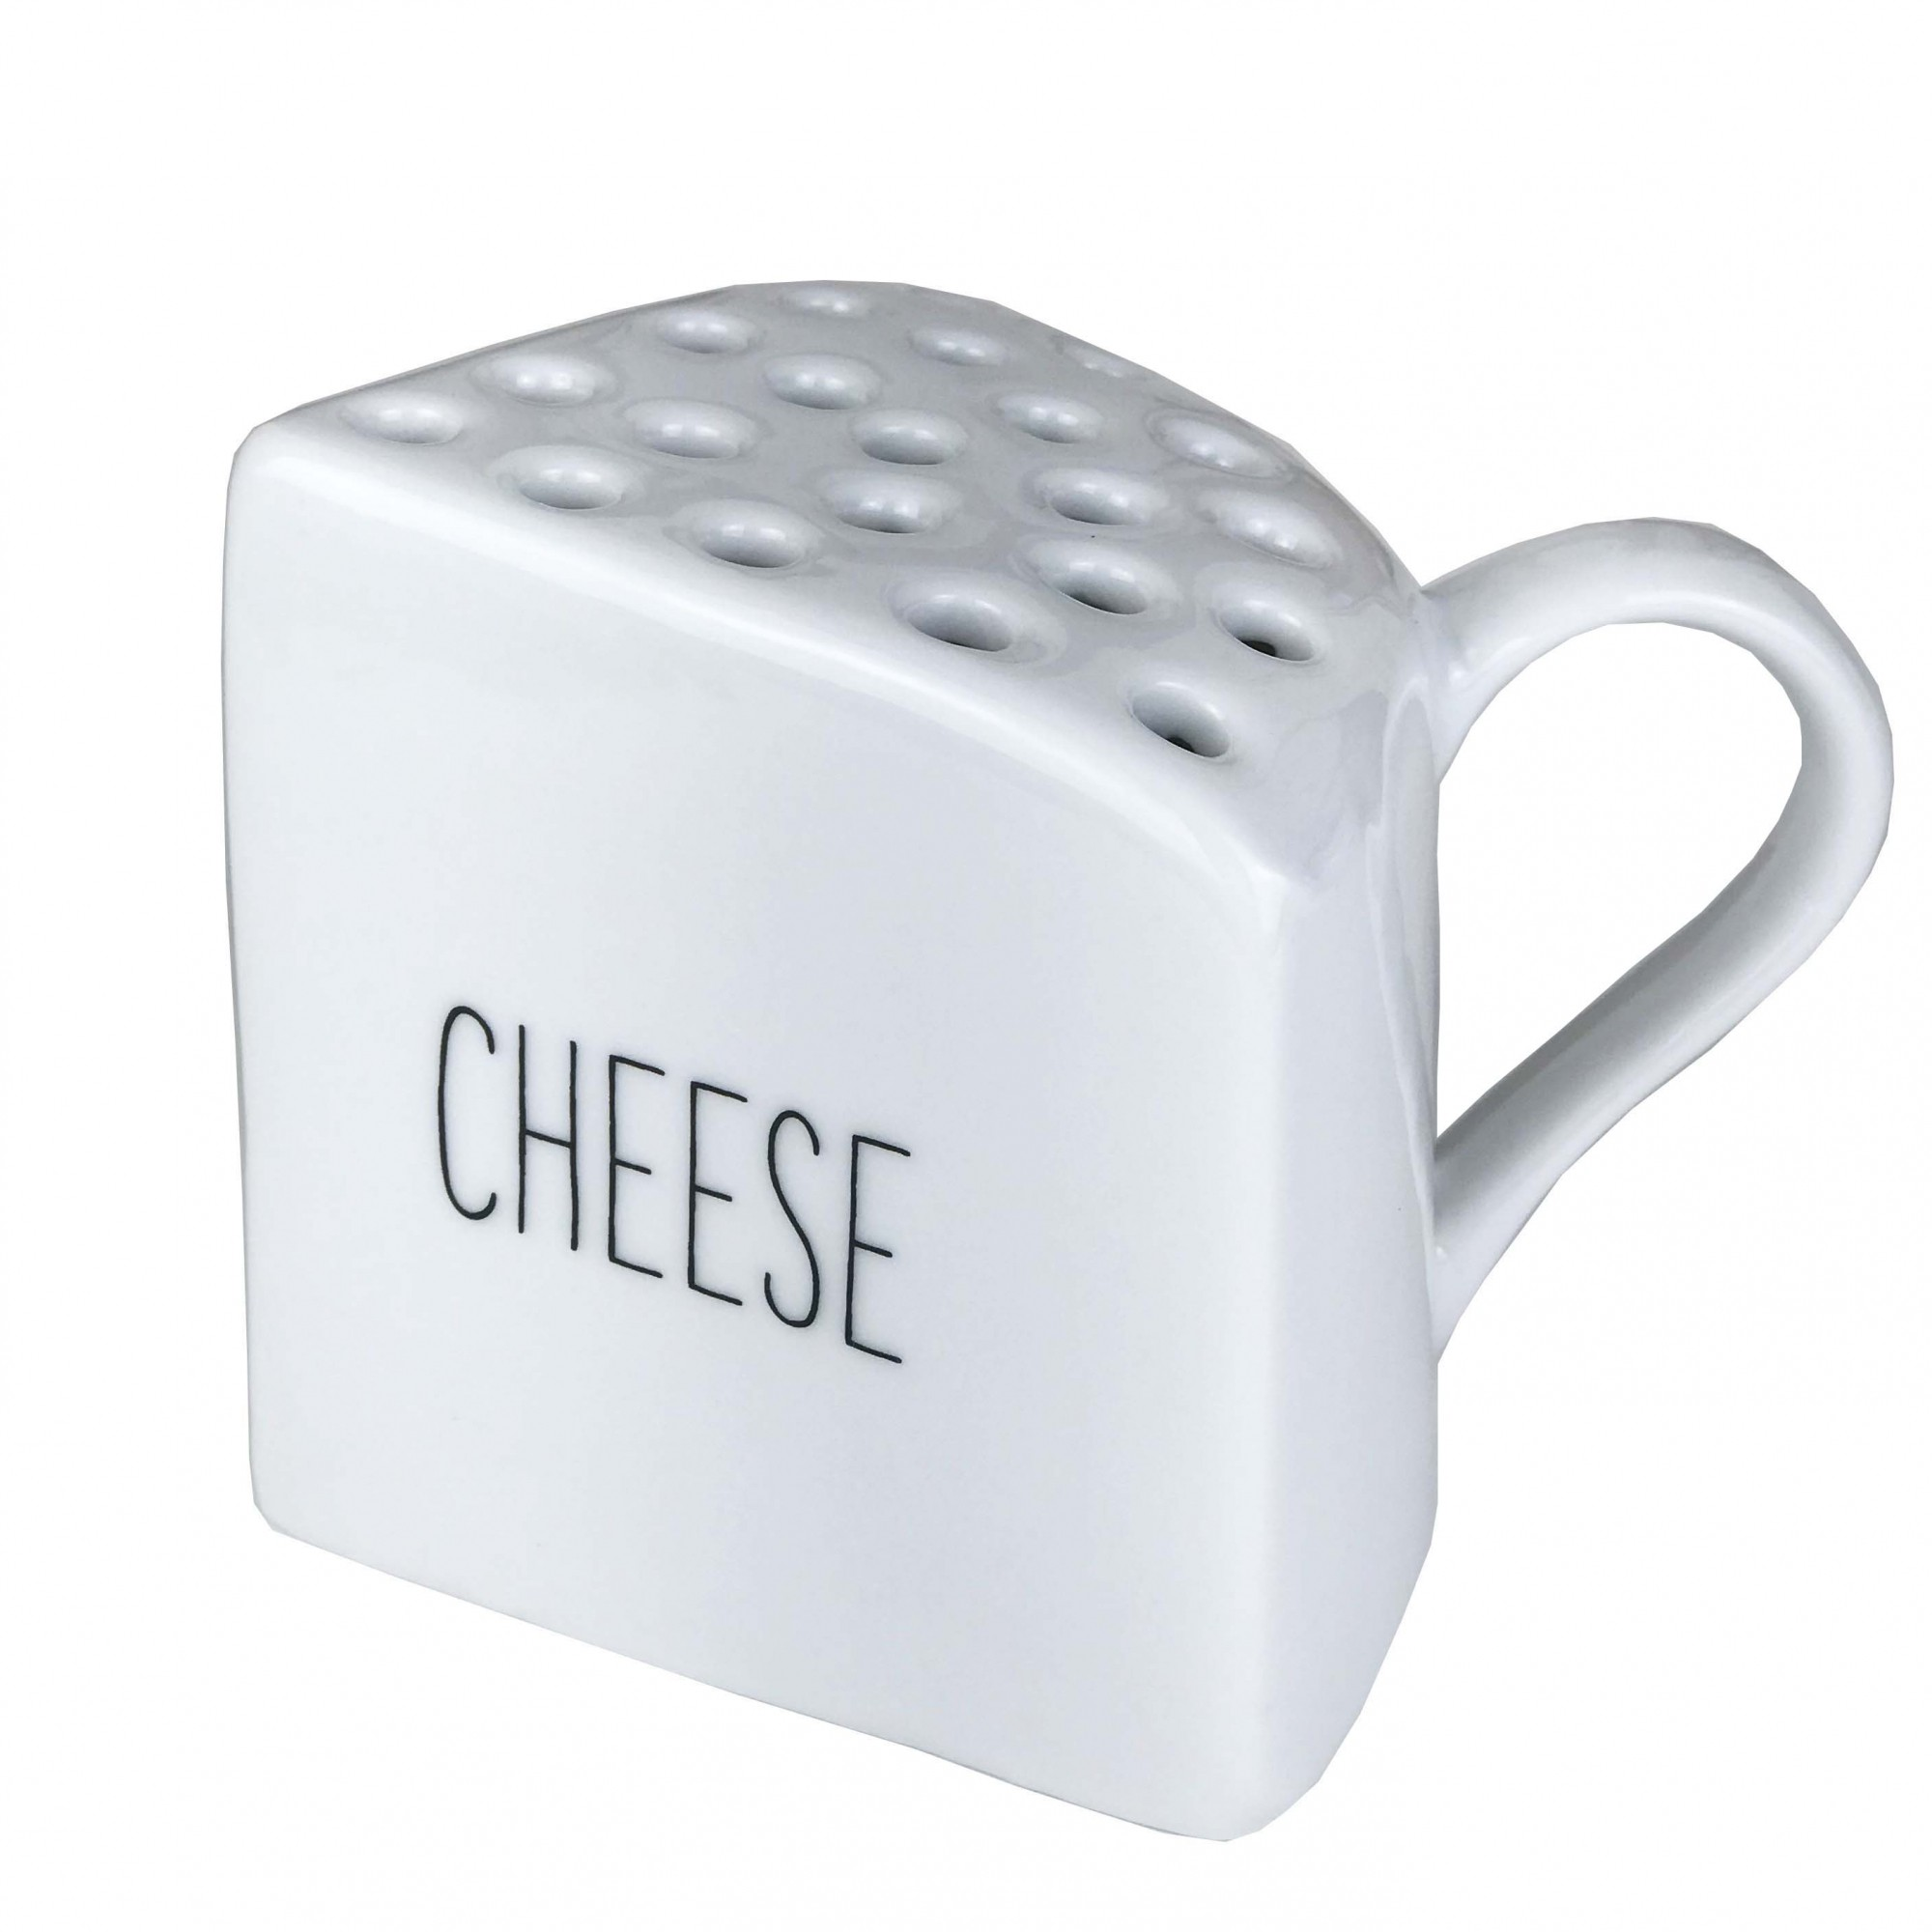 Queijeira Lettering Cheese